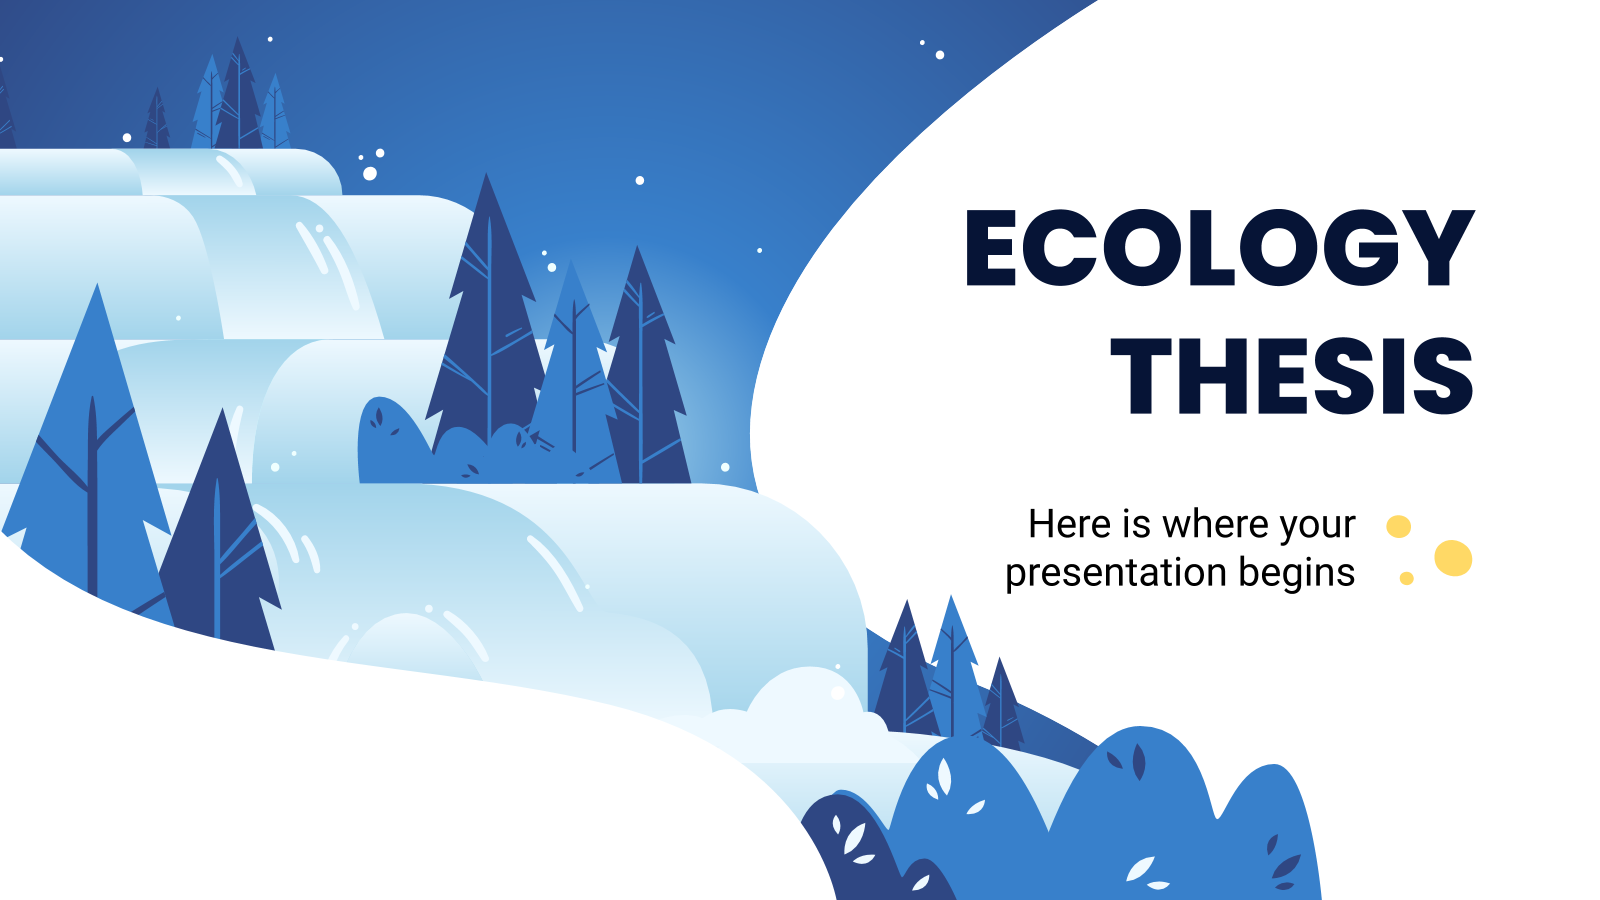 Ecology Thesis presentation template